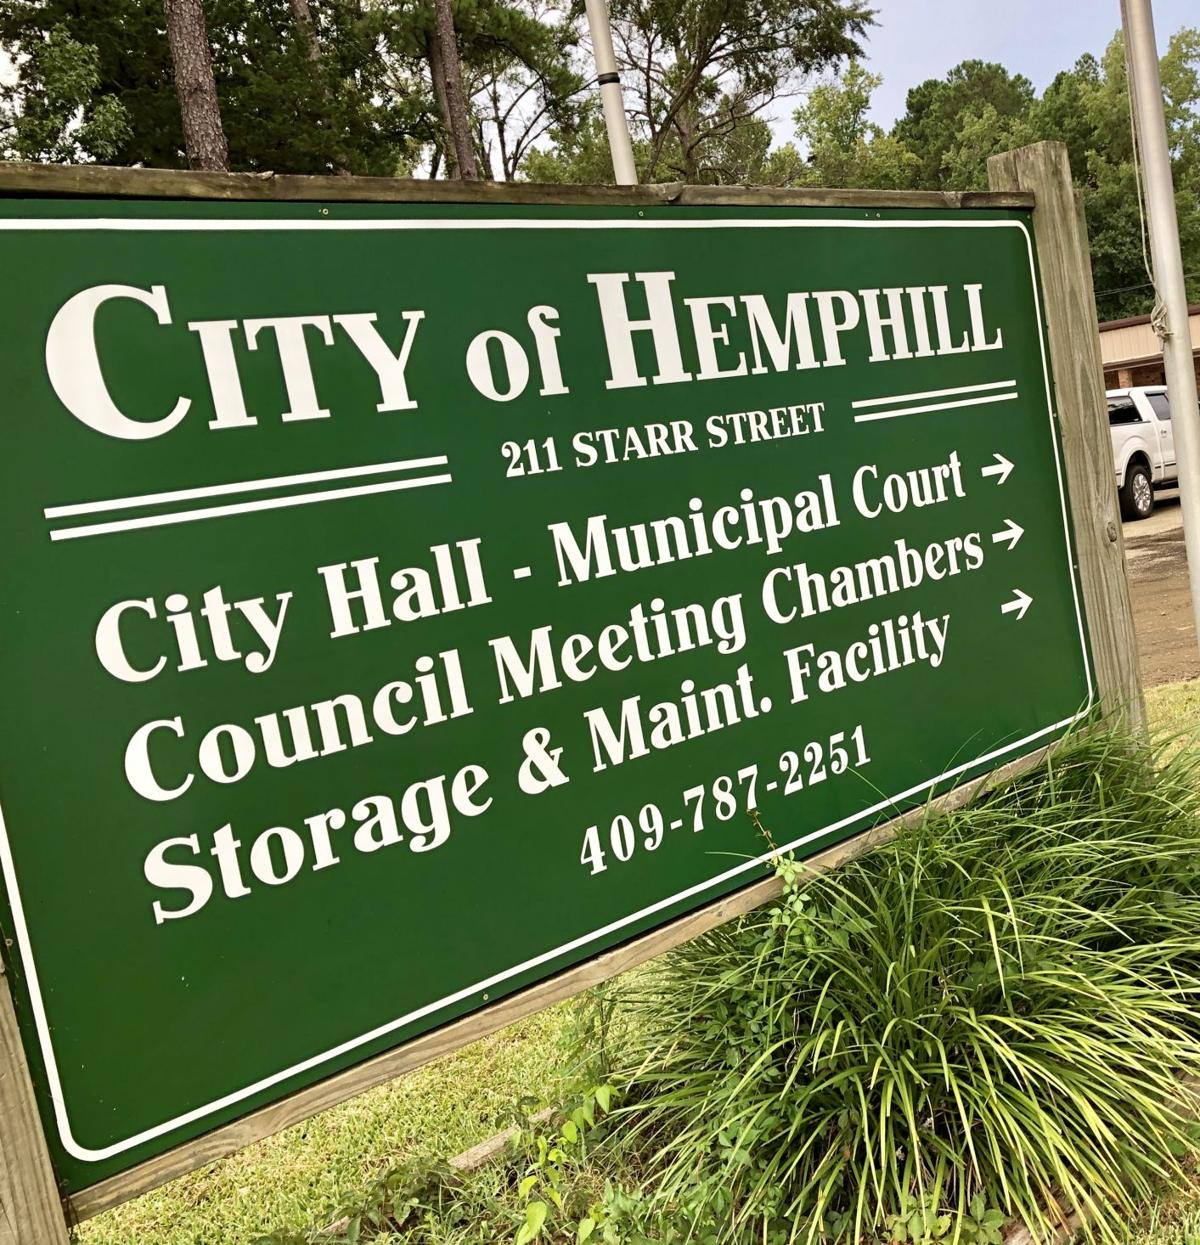 City of Hemphill